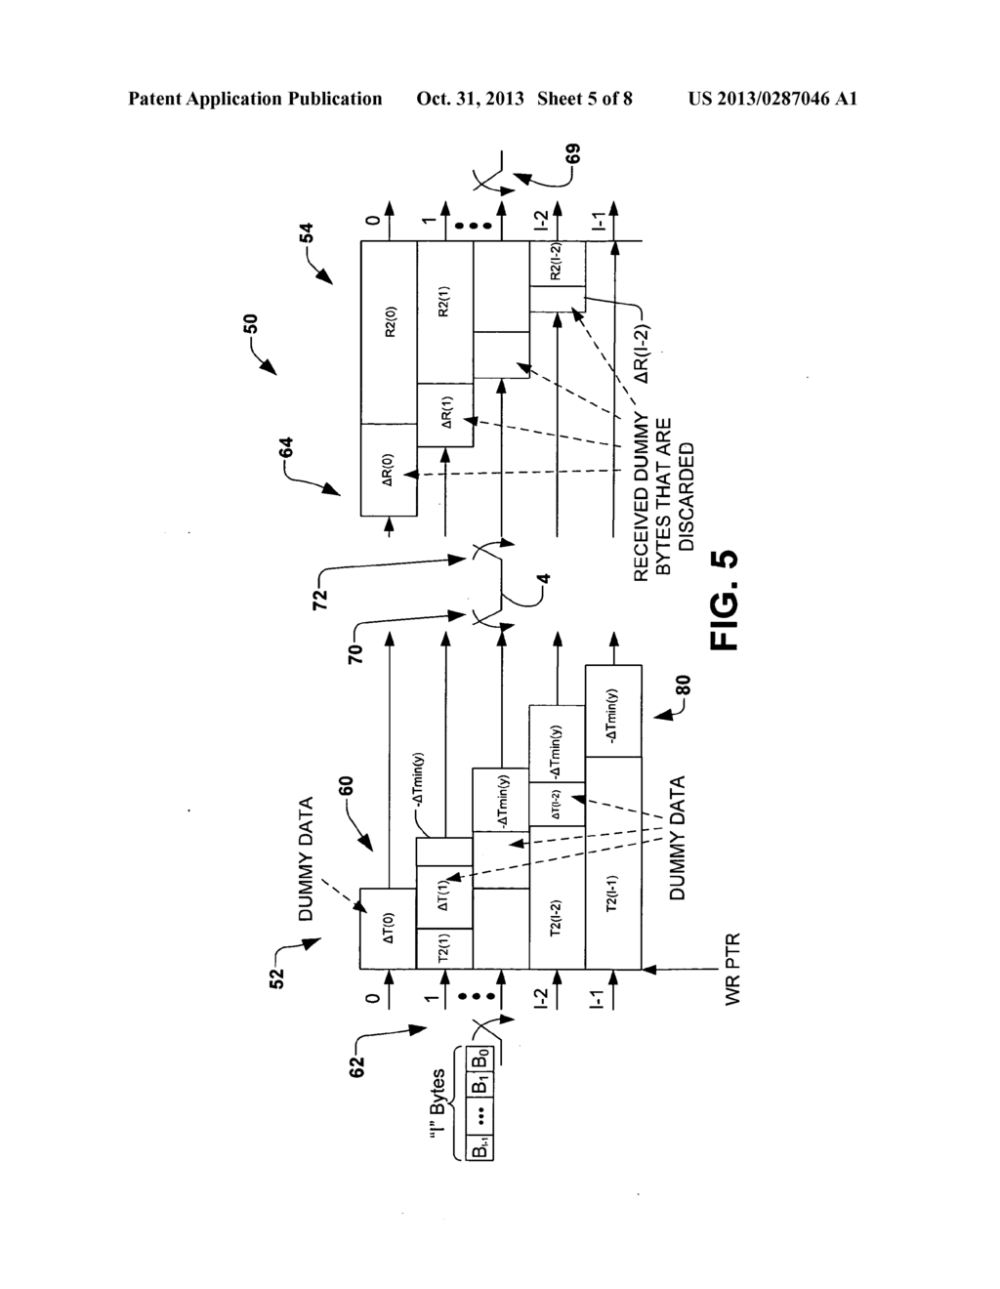 medium resolution of seamless change of depth of a general convolutional interleaver during transmission without loss of data diagram schematic and image 06